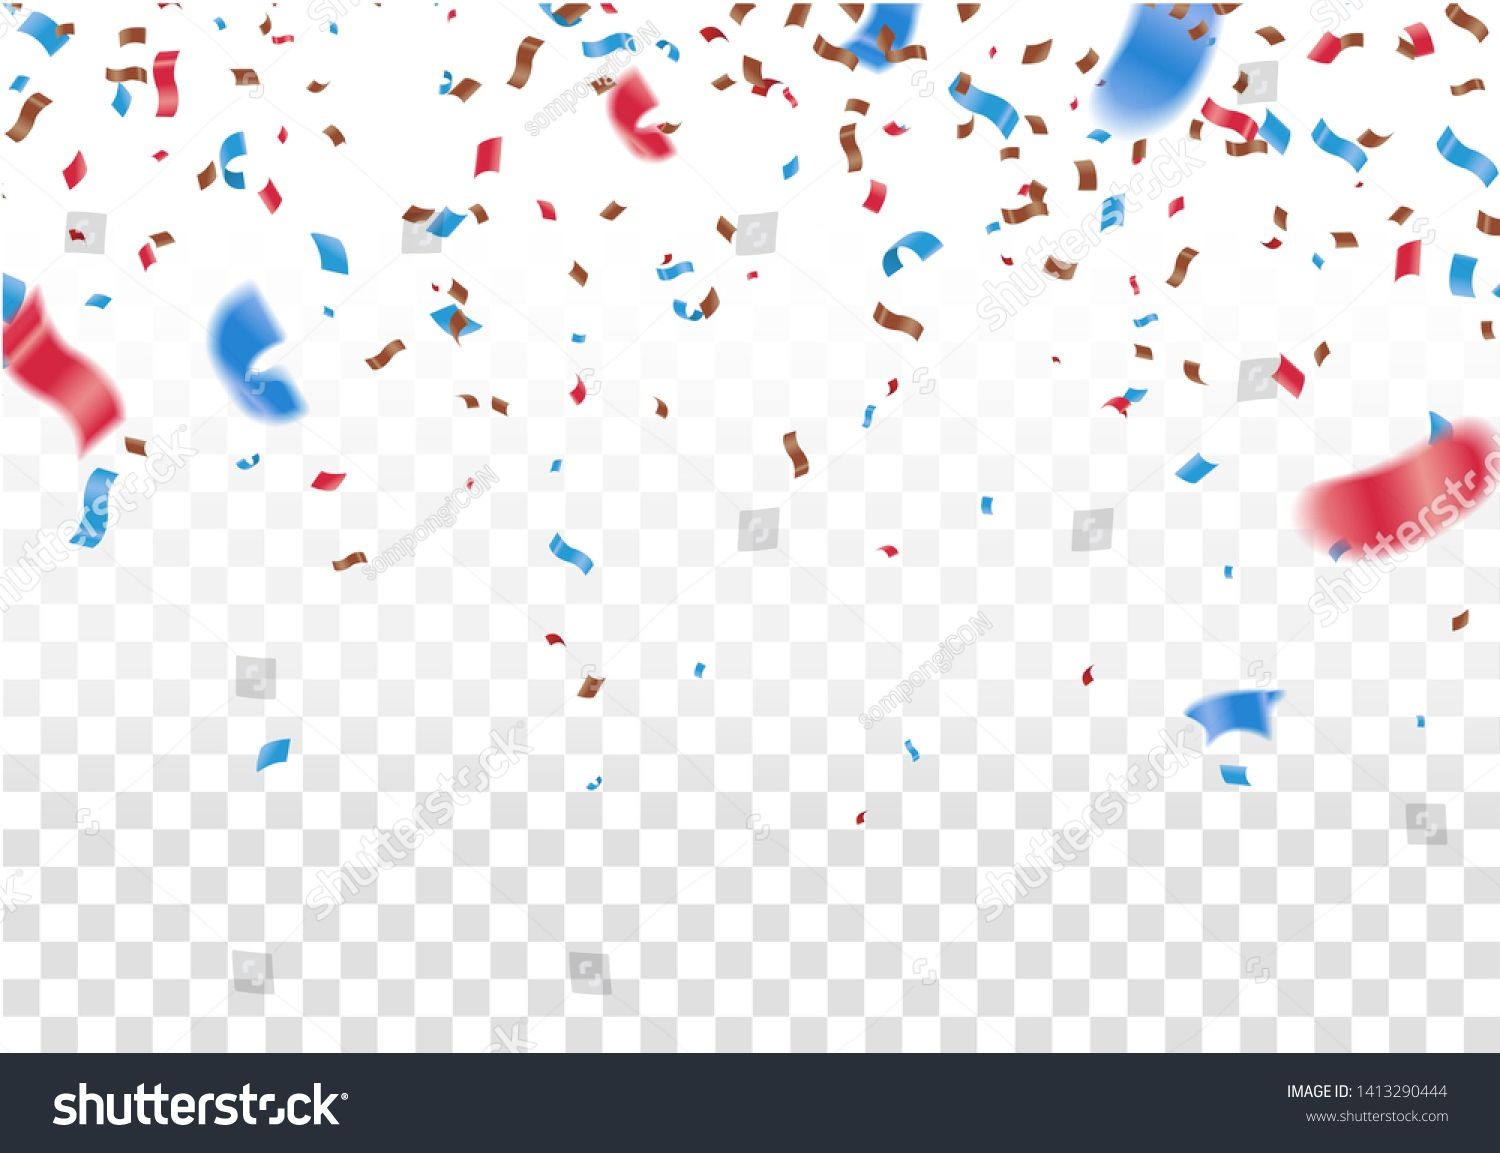 Celebrate Banner Party Flags With Confetti Vector Illustration Design Template Happy Holiday Of Confetti Background Wallpapers Party Flags Glitter Overlays